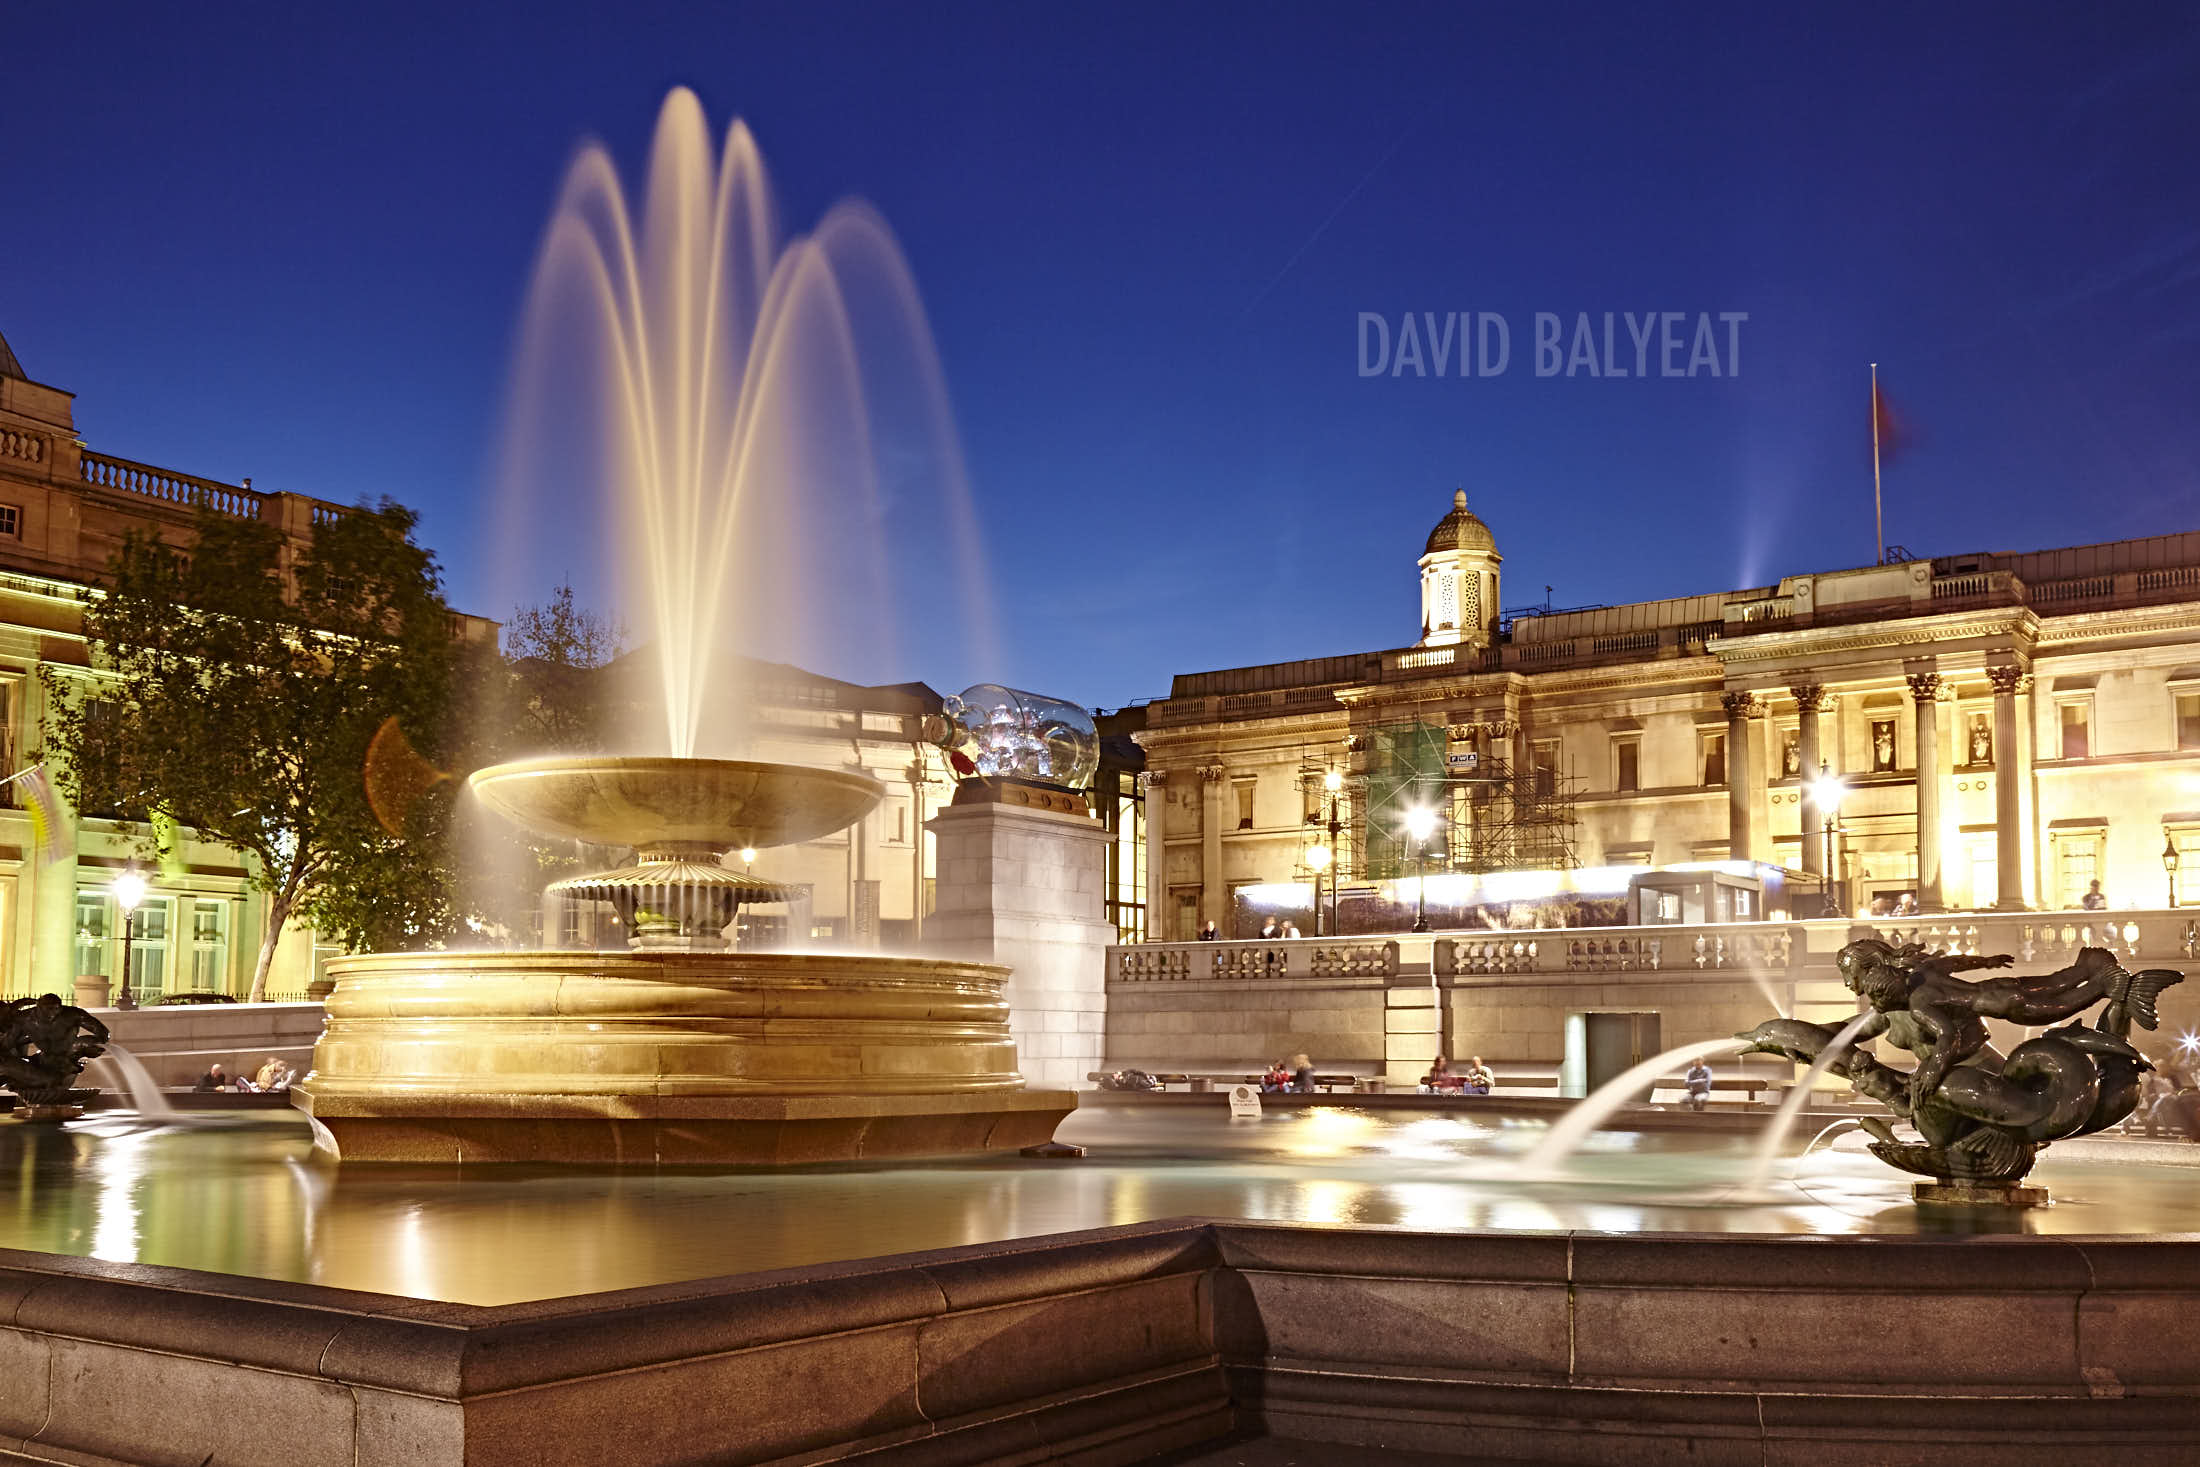 Trafalgar Square London fountains high-definition HD cityscape photography artwork